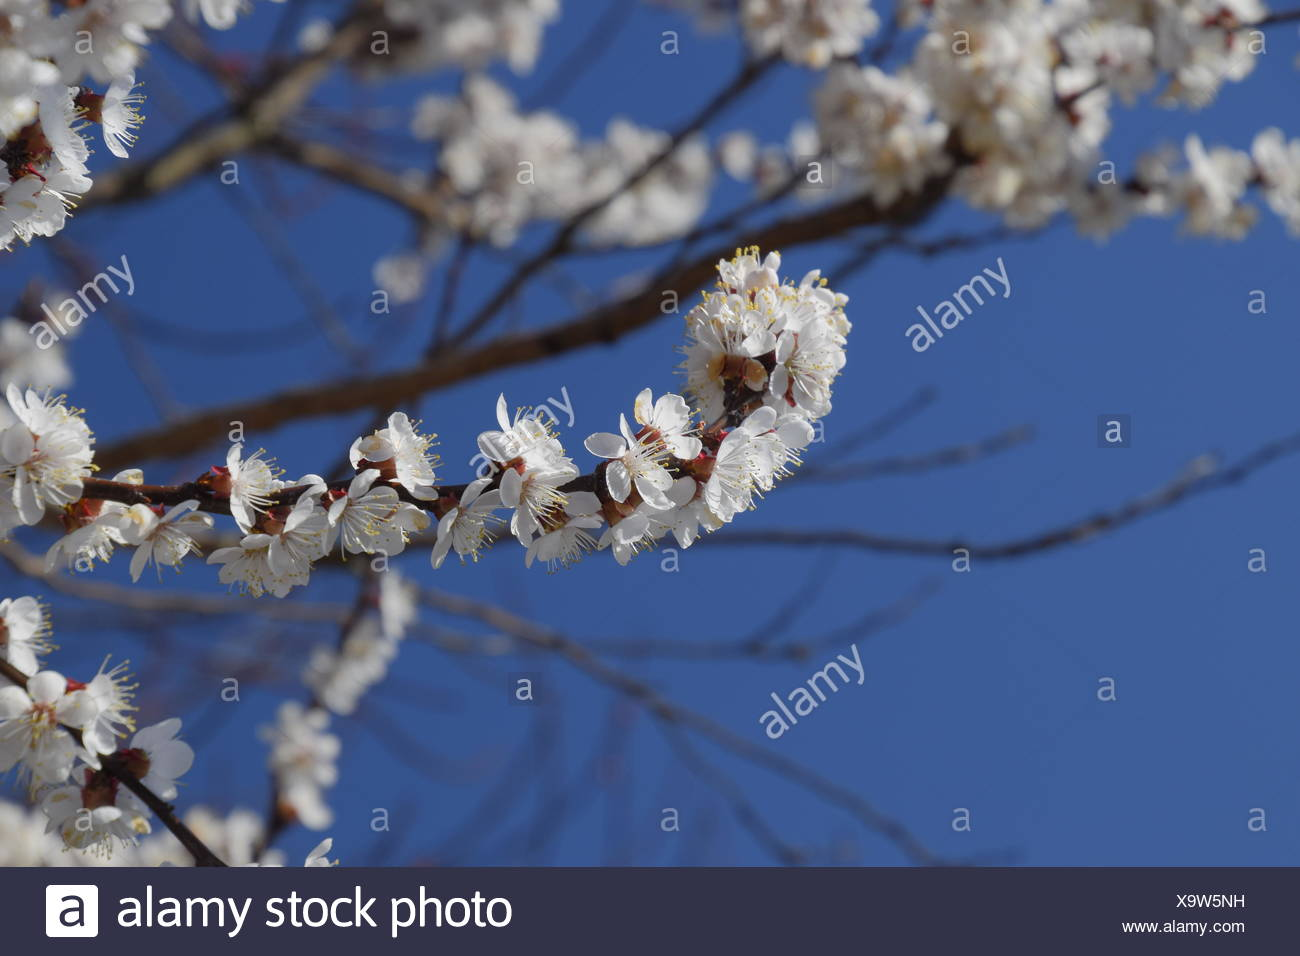 Spring Flowering Trees Pollination Of Flowers Of Apricot Blooming